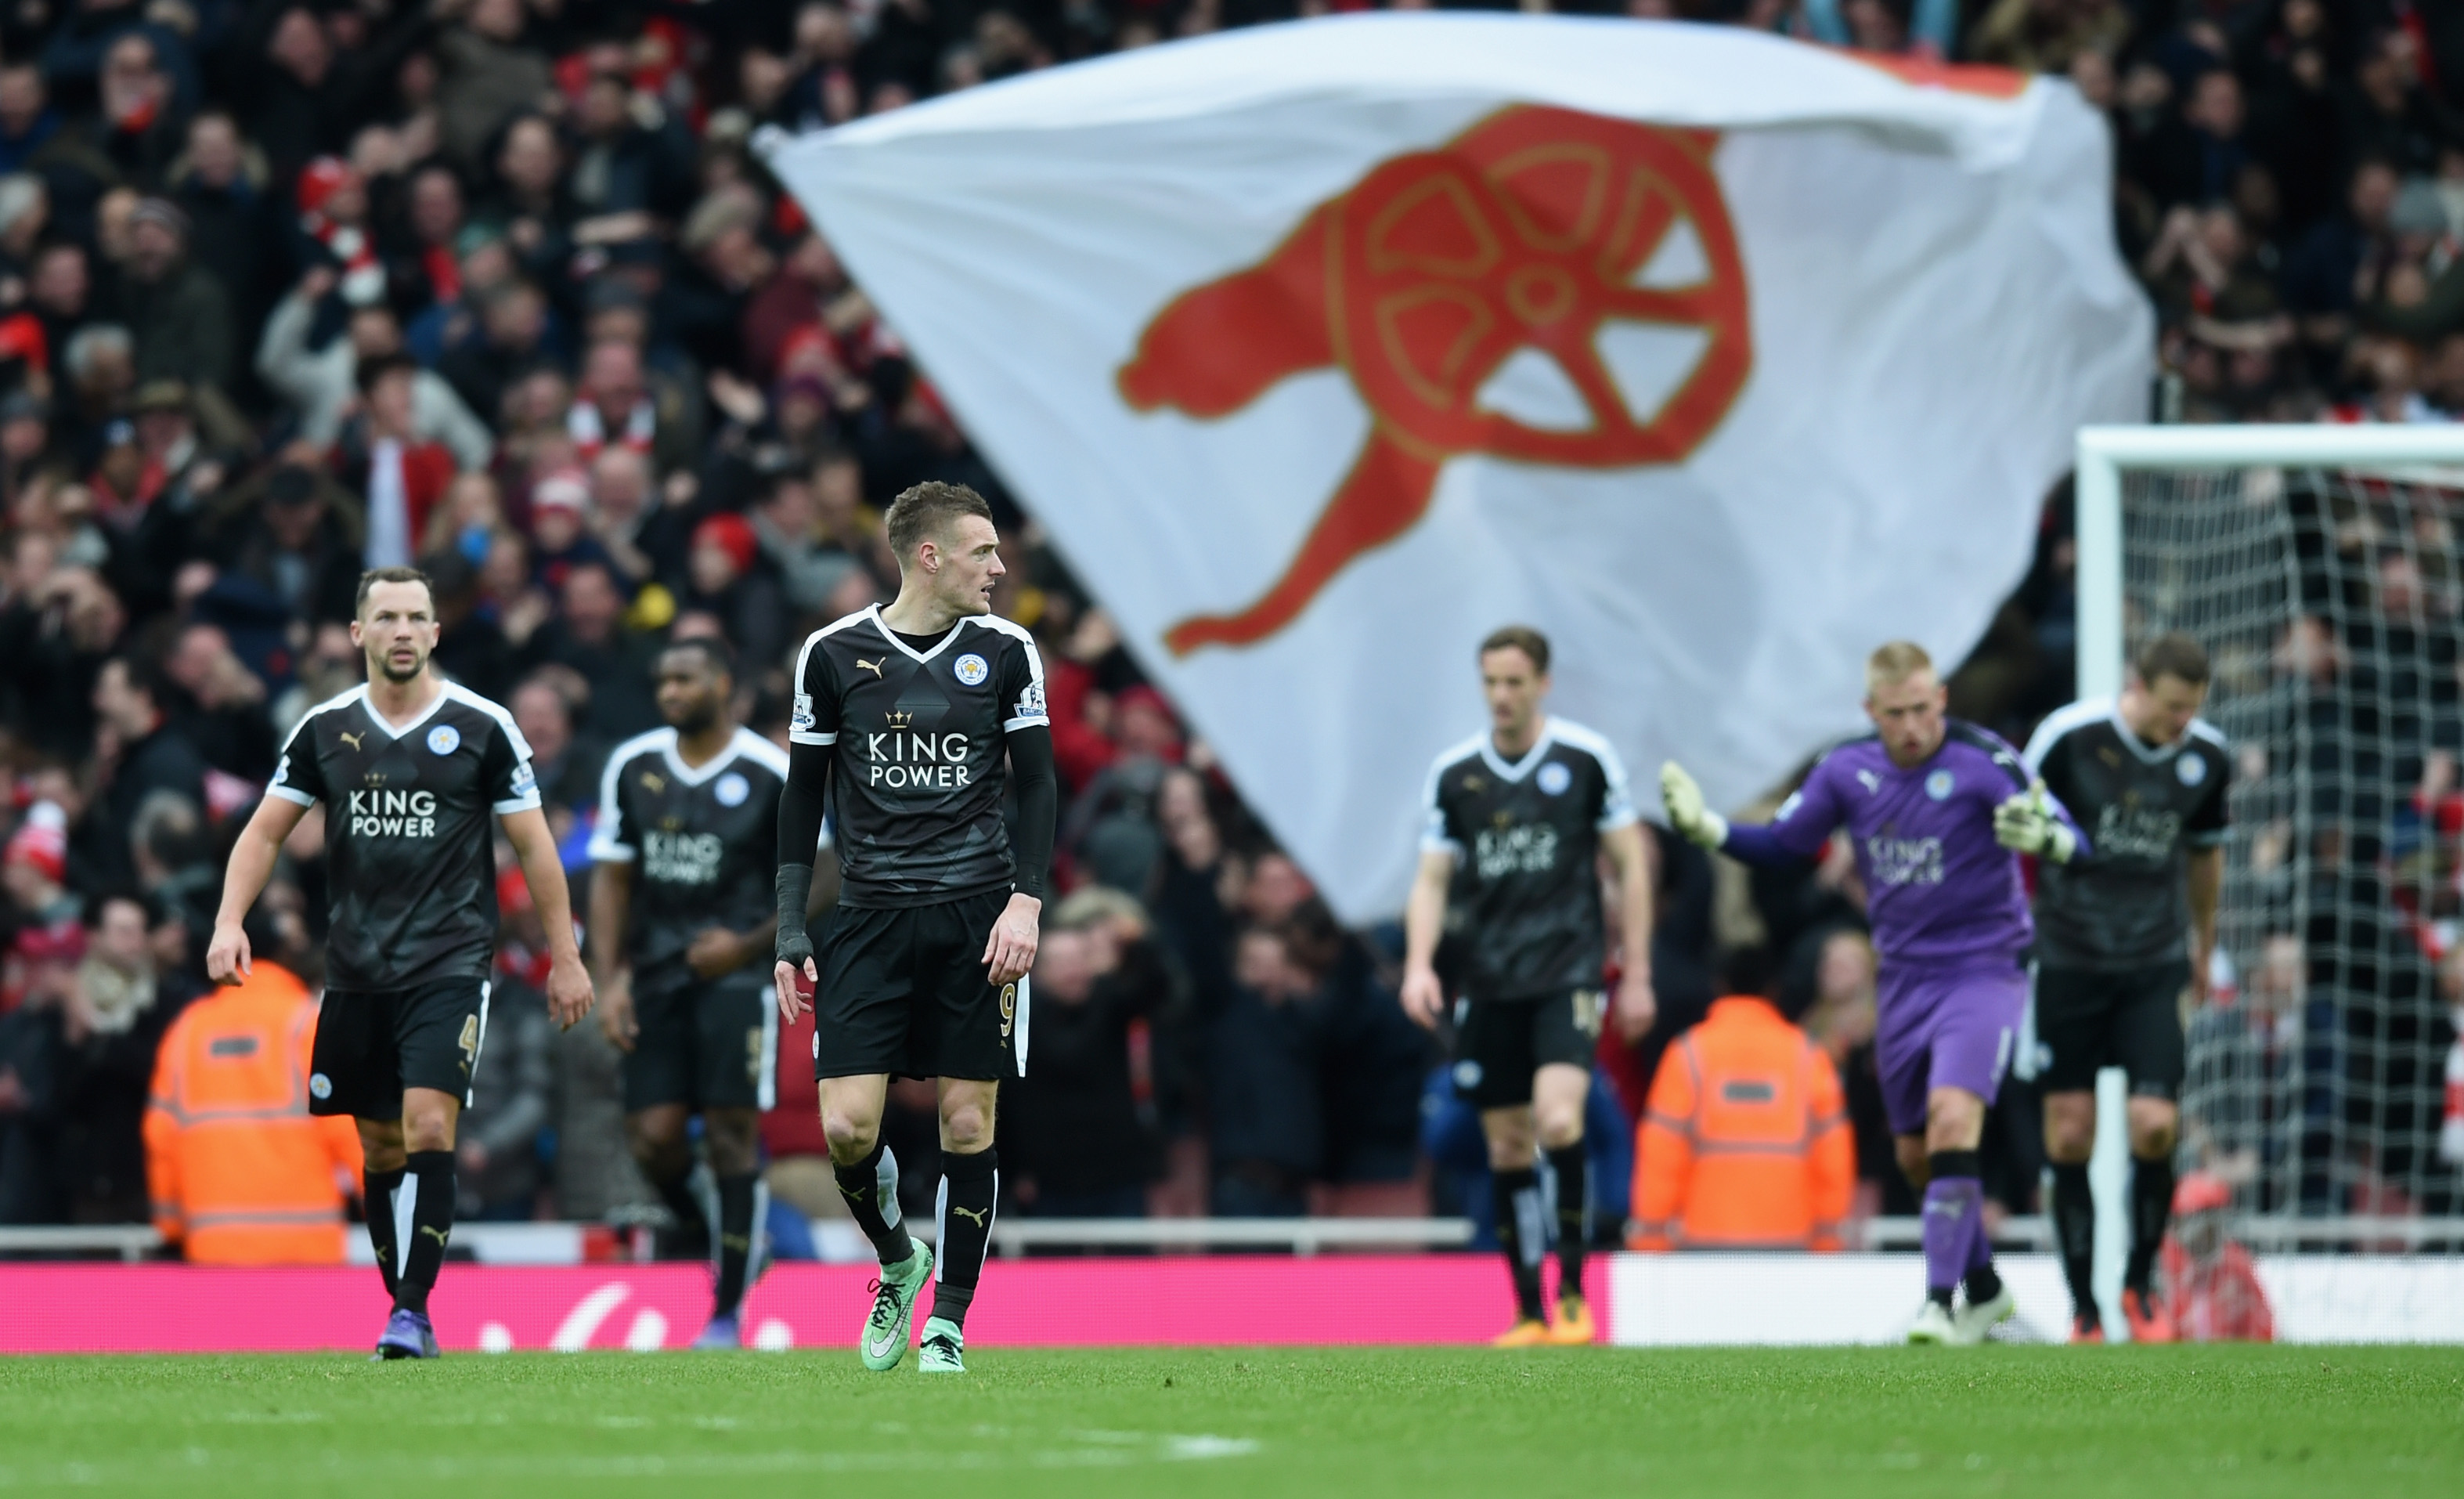 Arsenal 2 1 Leicester February 2016 A Tale Of Leicester Glory And Arsenal Failure The Totally Football Show